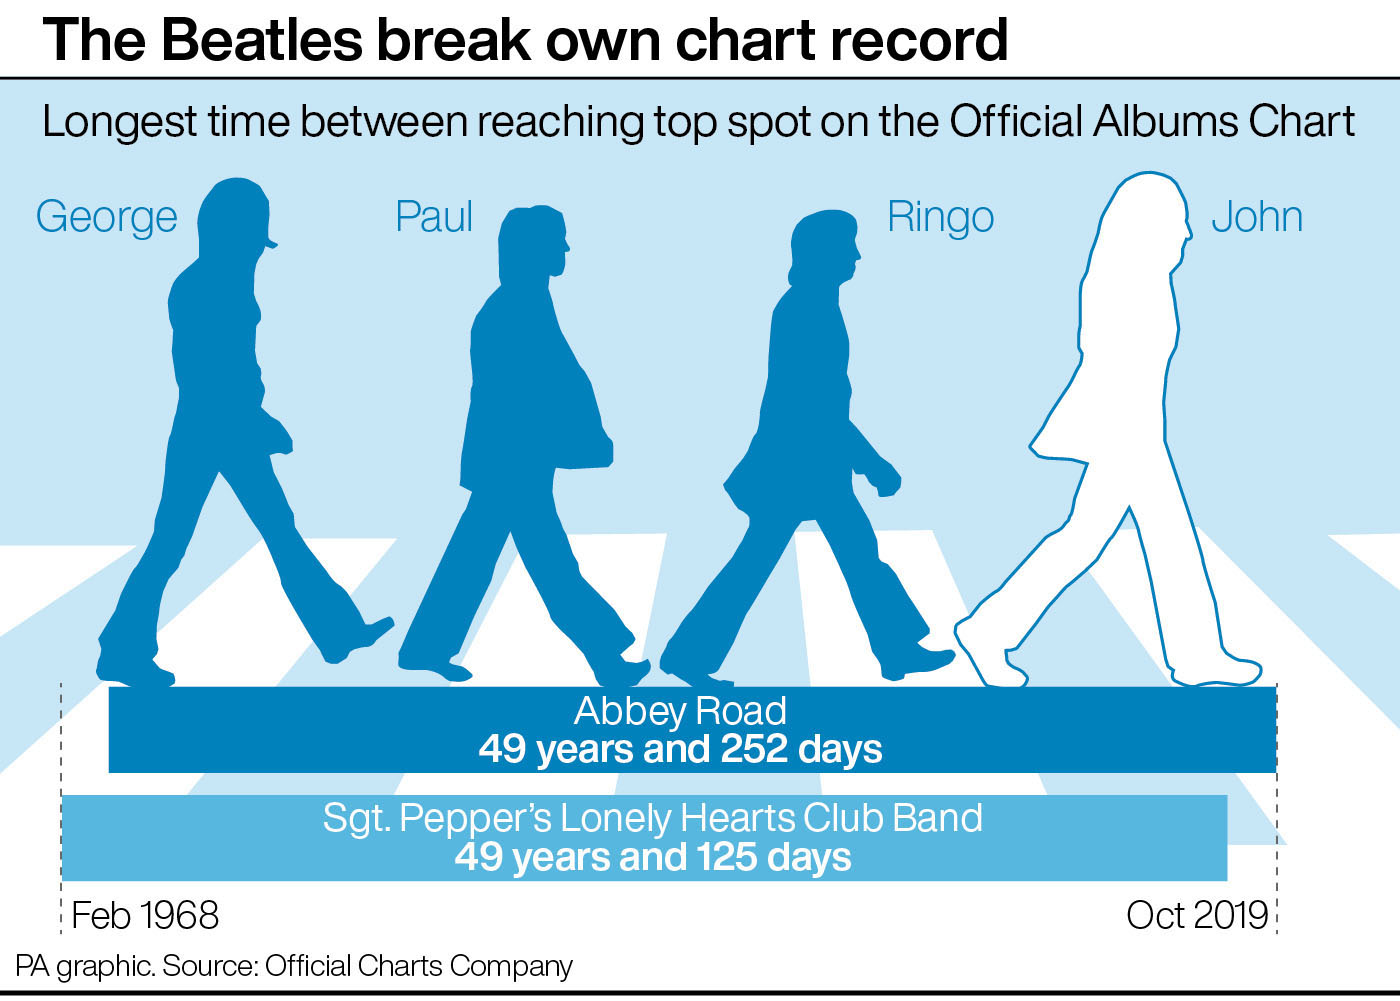 Longest time between reaching top spot on the Official Albums Chart